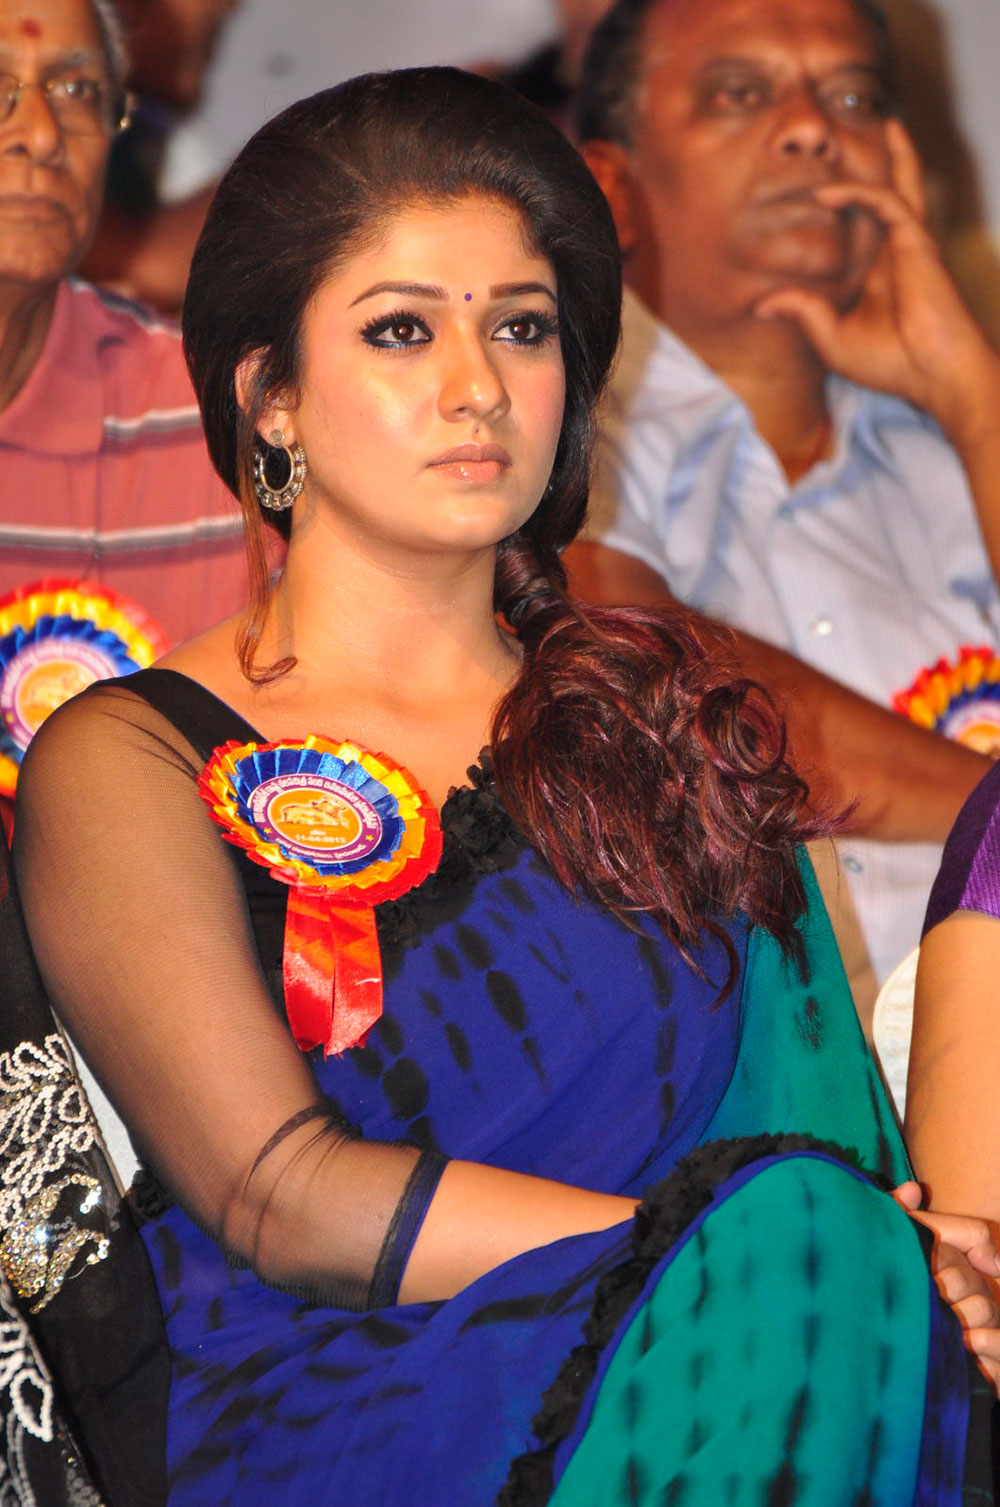 Nayanthara Sex Photos http://sabhotactress.blogspot.com/2013/04/nayanthara-latest-sexy-photo-gallery-in.html